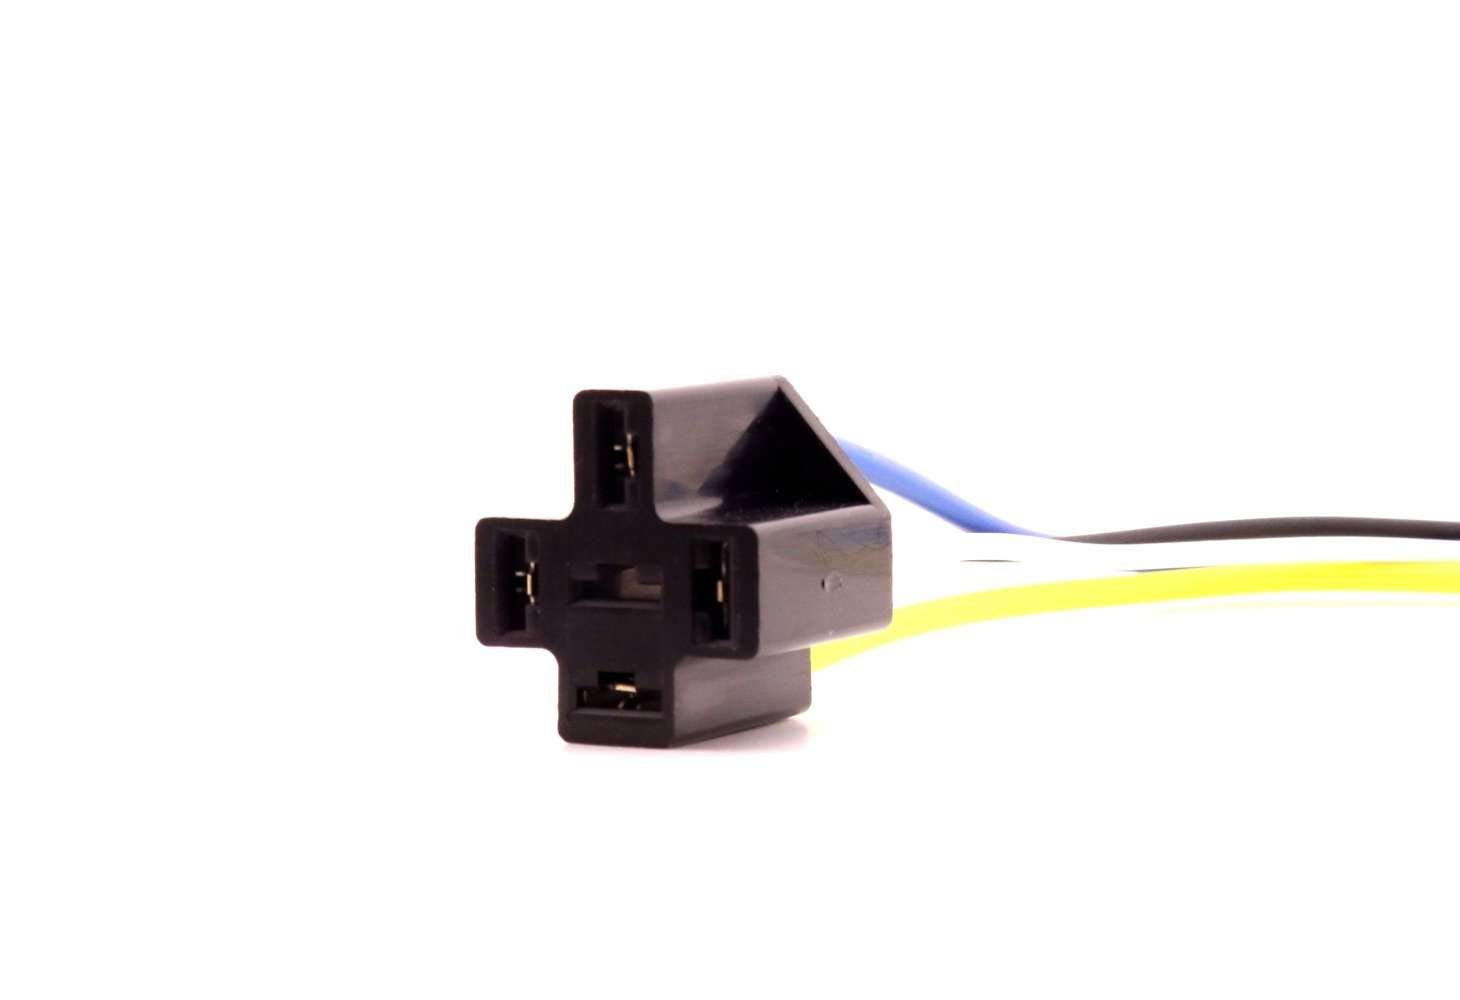 hight resolution of sc792 1 5pin 4wire 5 pin mini iso automotive relay socket pin